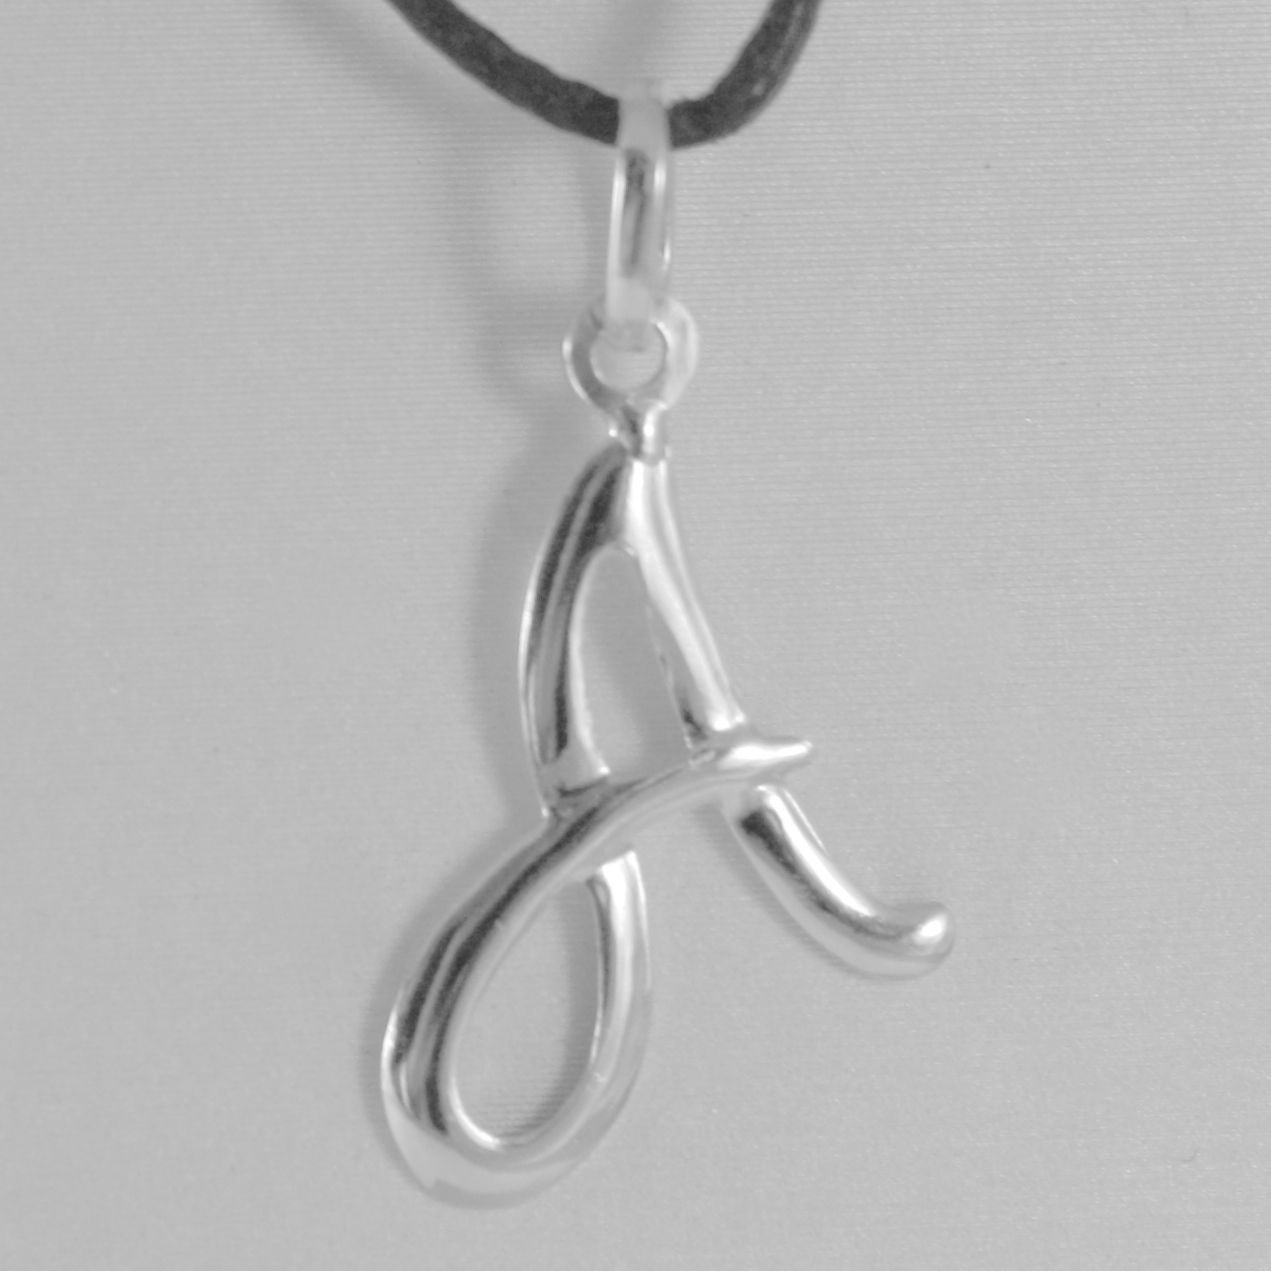 PENDANT WHITE GOLD 18K WITH INITIAL LETTER A GLOSSY 2,5 CM WITH CORD